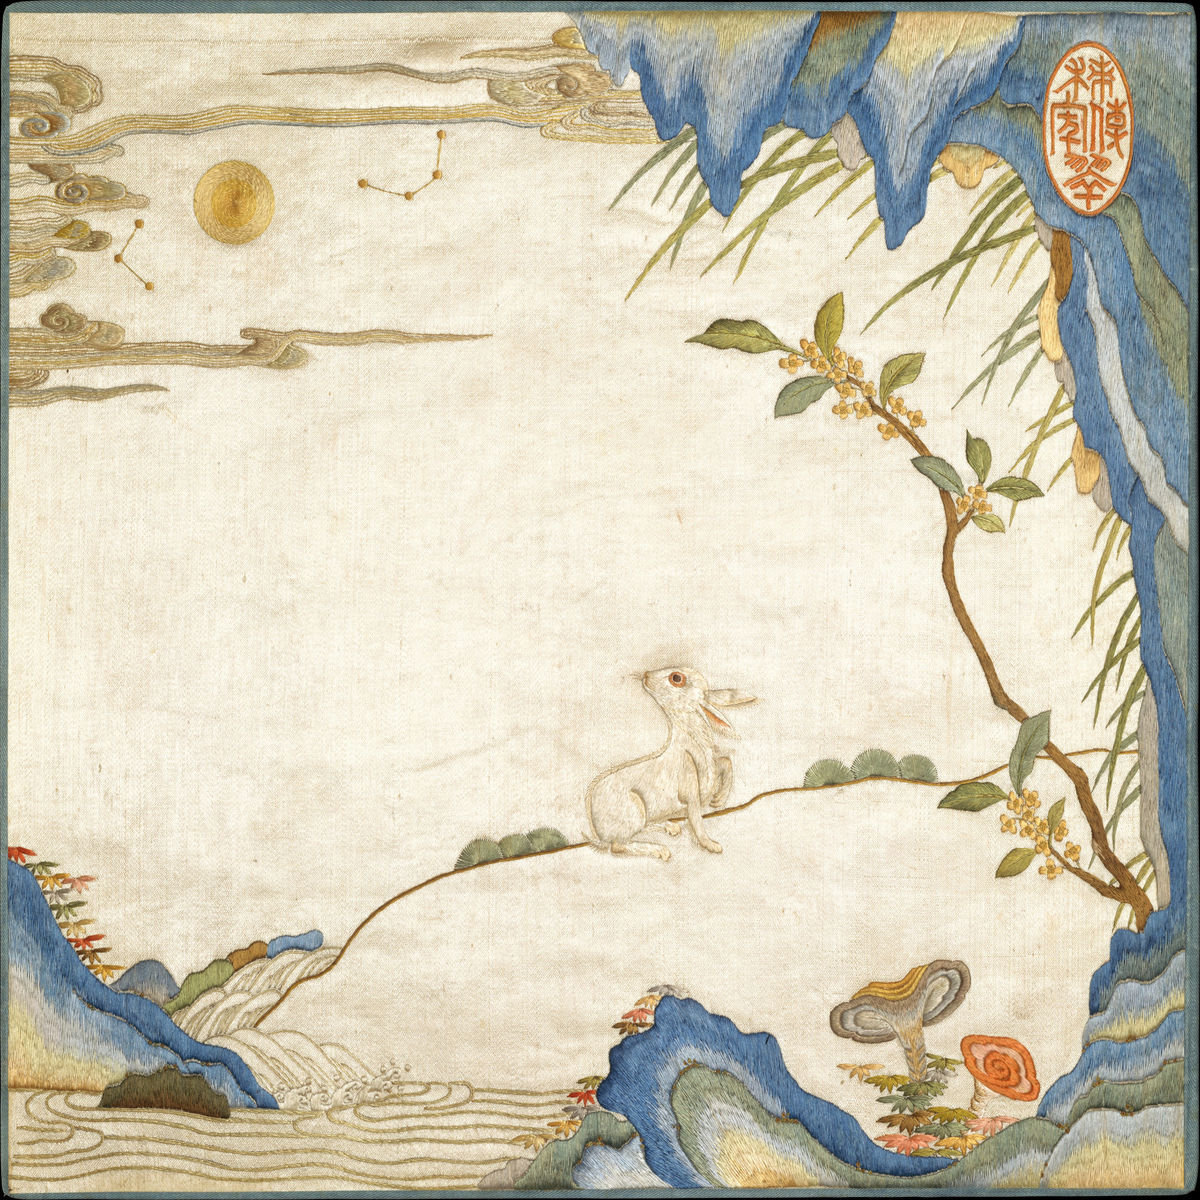 Rabbit in Landscape - Qing era China